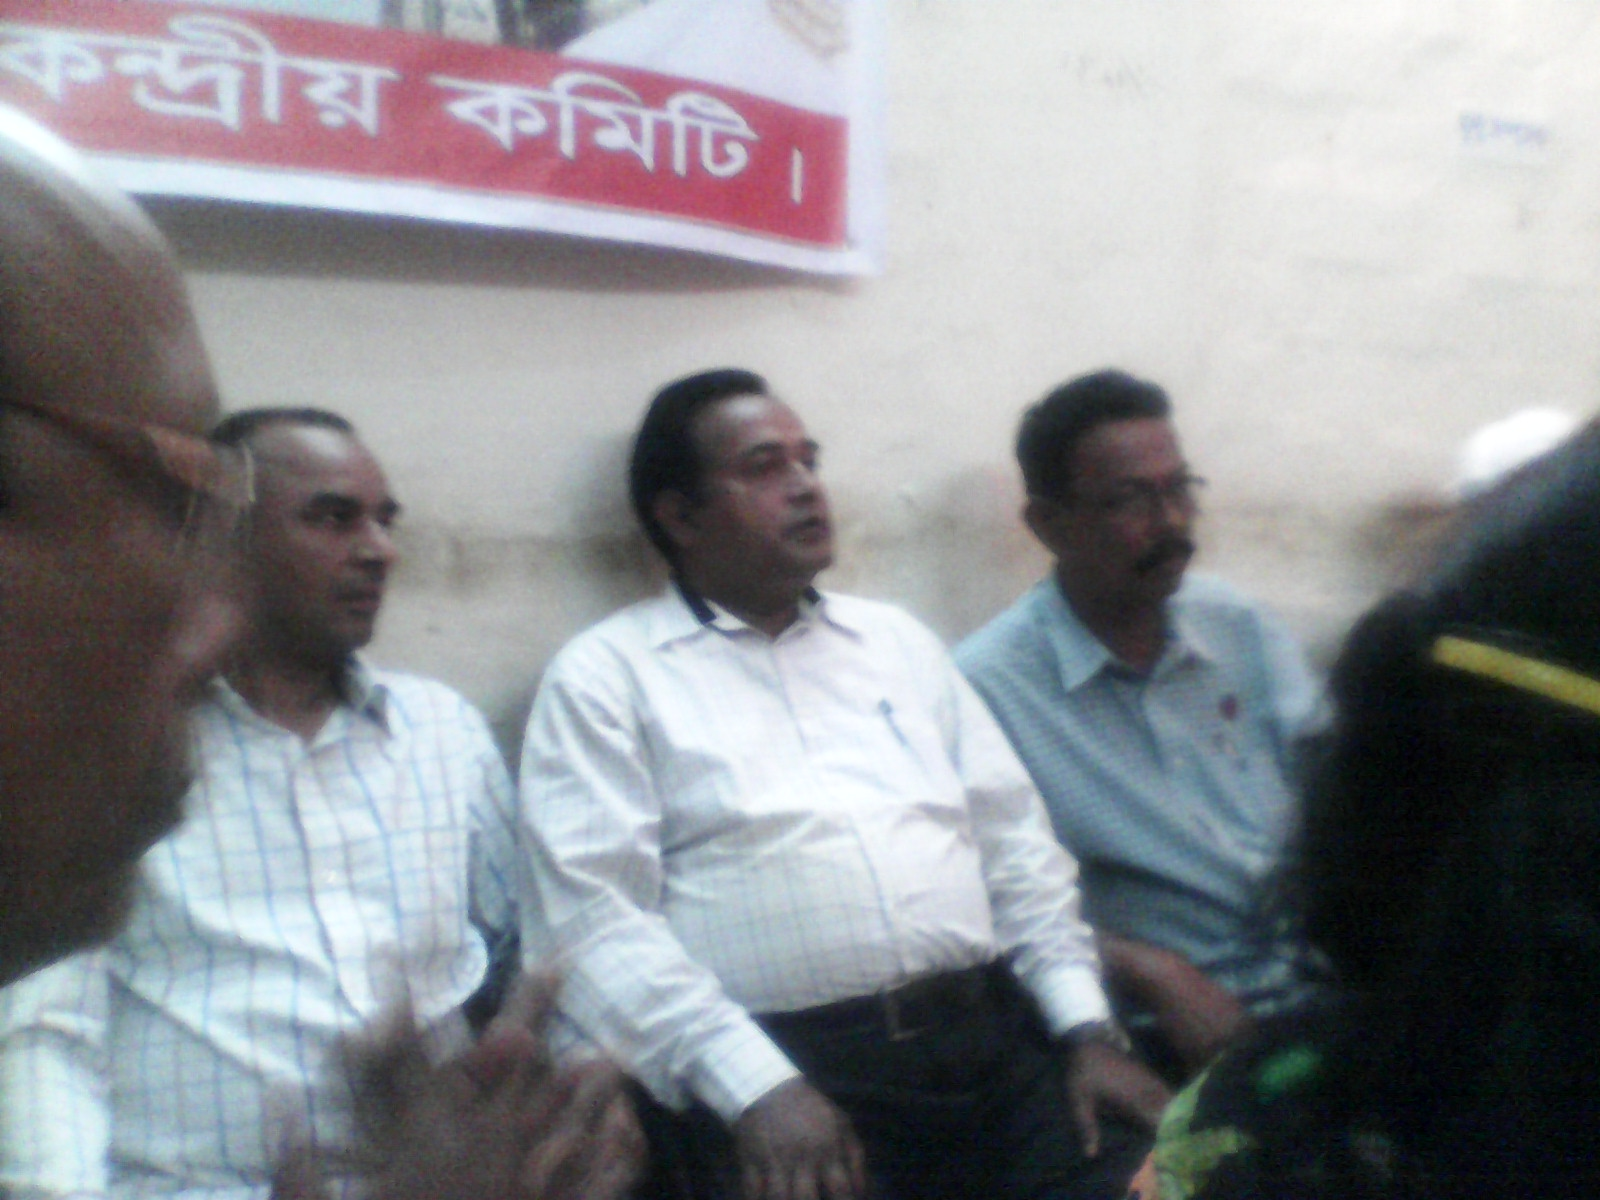 Mahmudul Hoque Khan Dulal is seen along with others